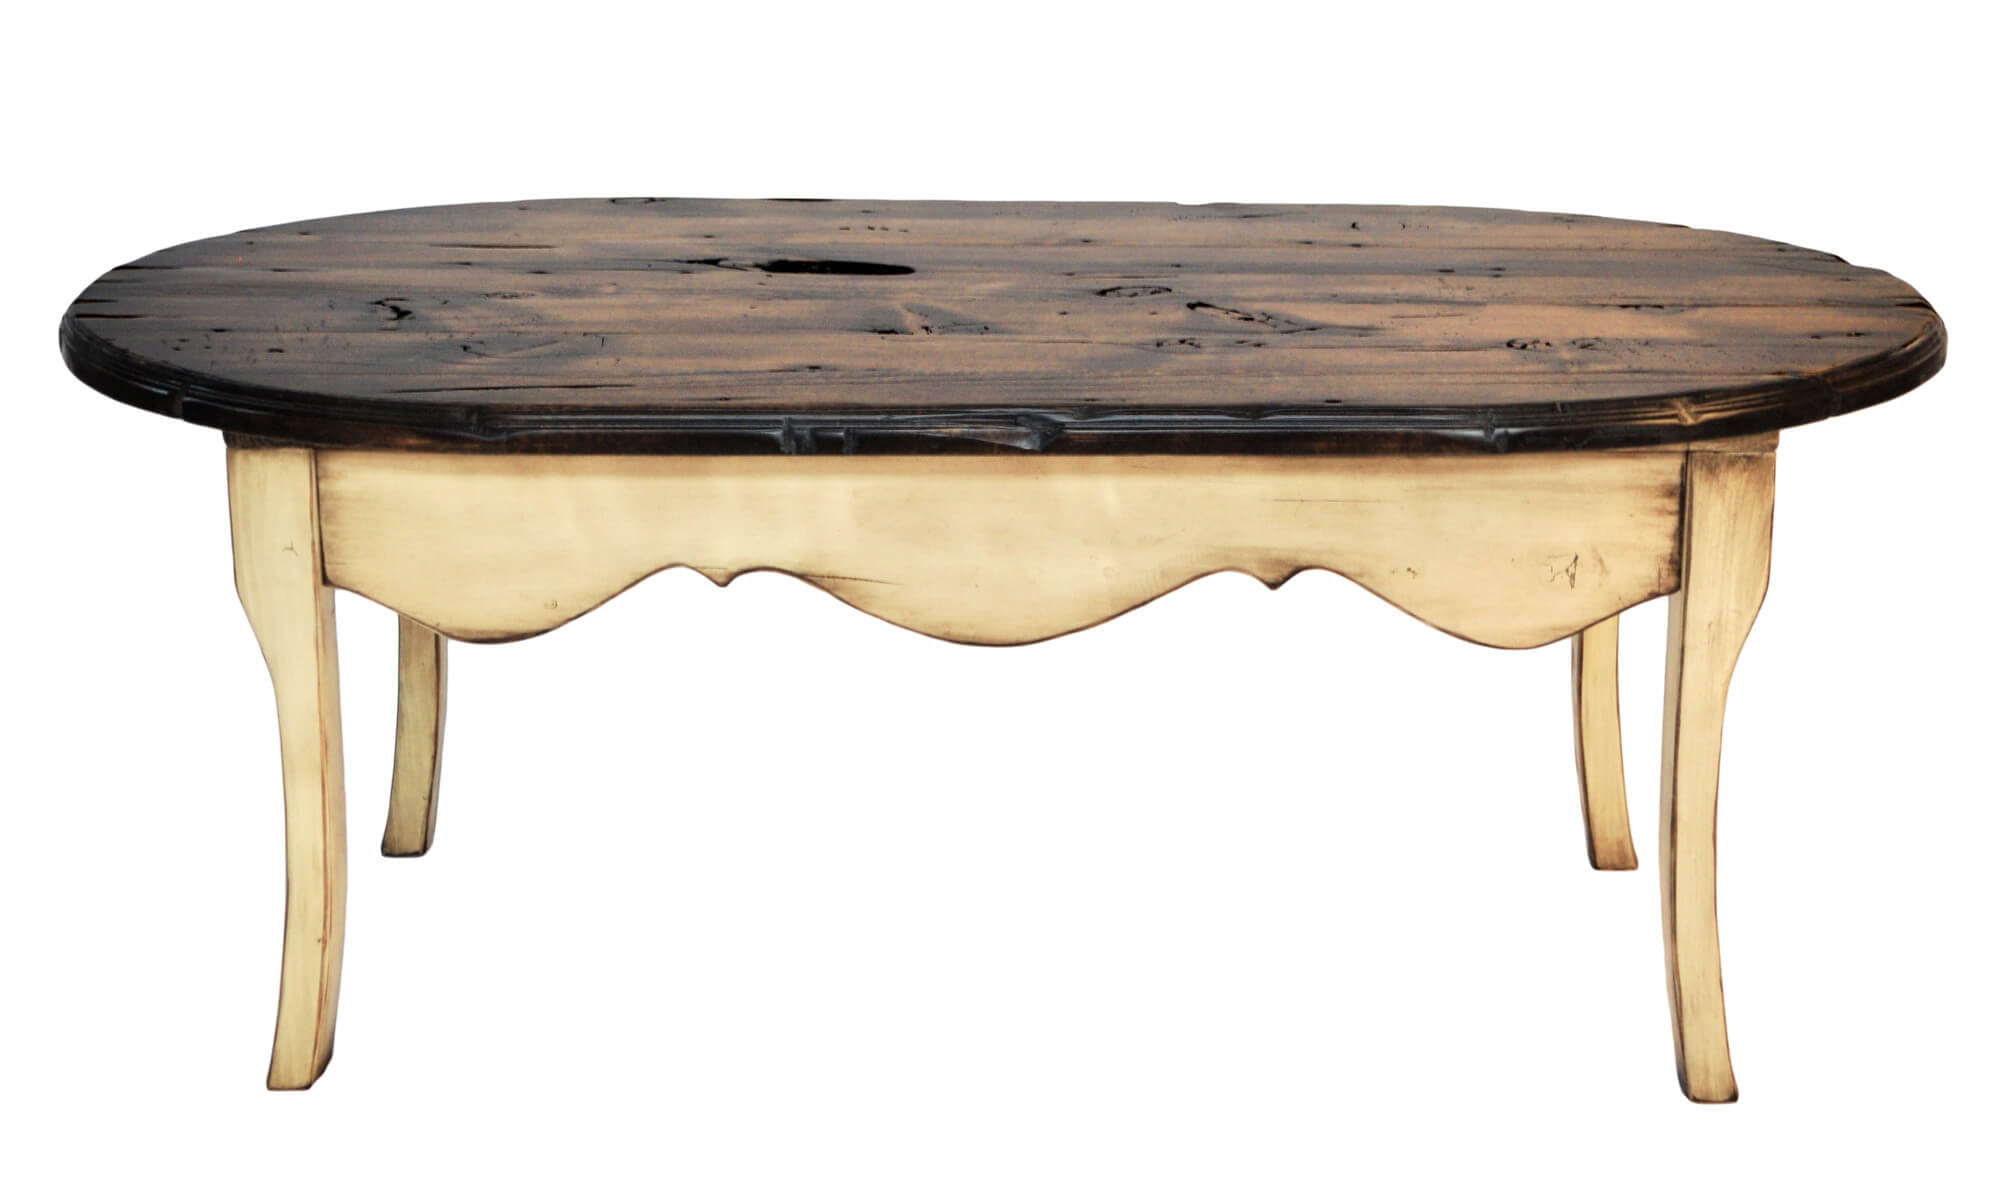 This truly unique table features a mixture of light and dark stained rustic wood. The darker surface is comprised of knotty, aged planks while the legs feature a burnt-edge stain.